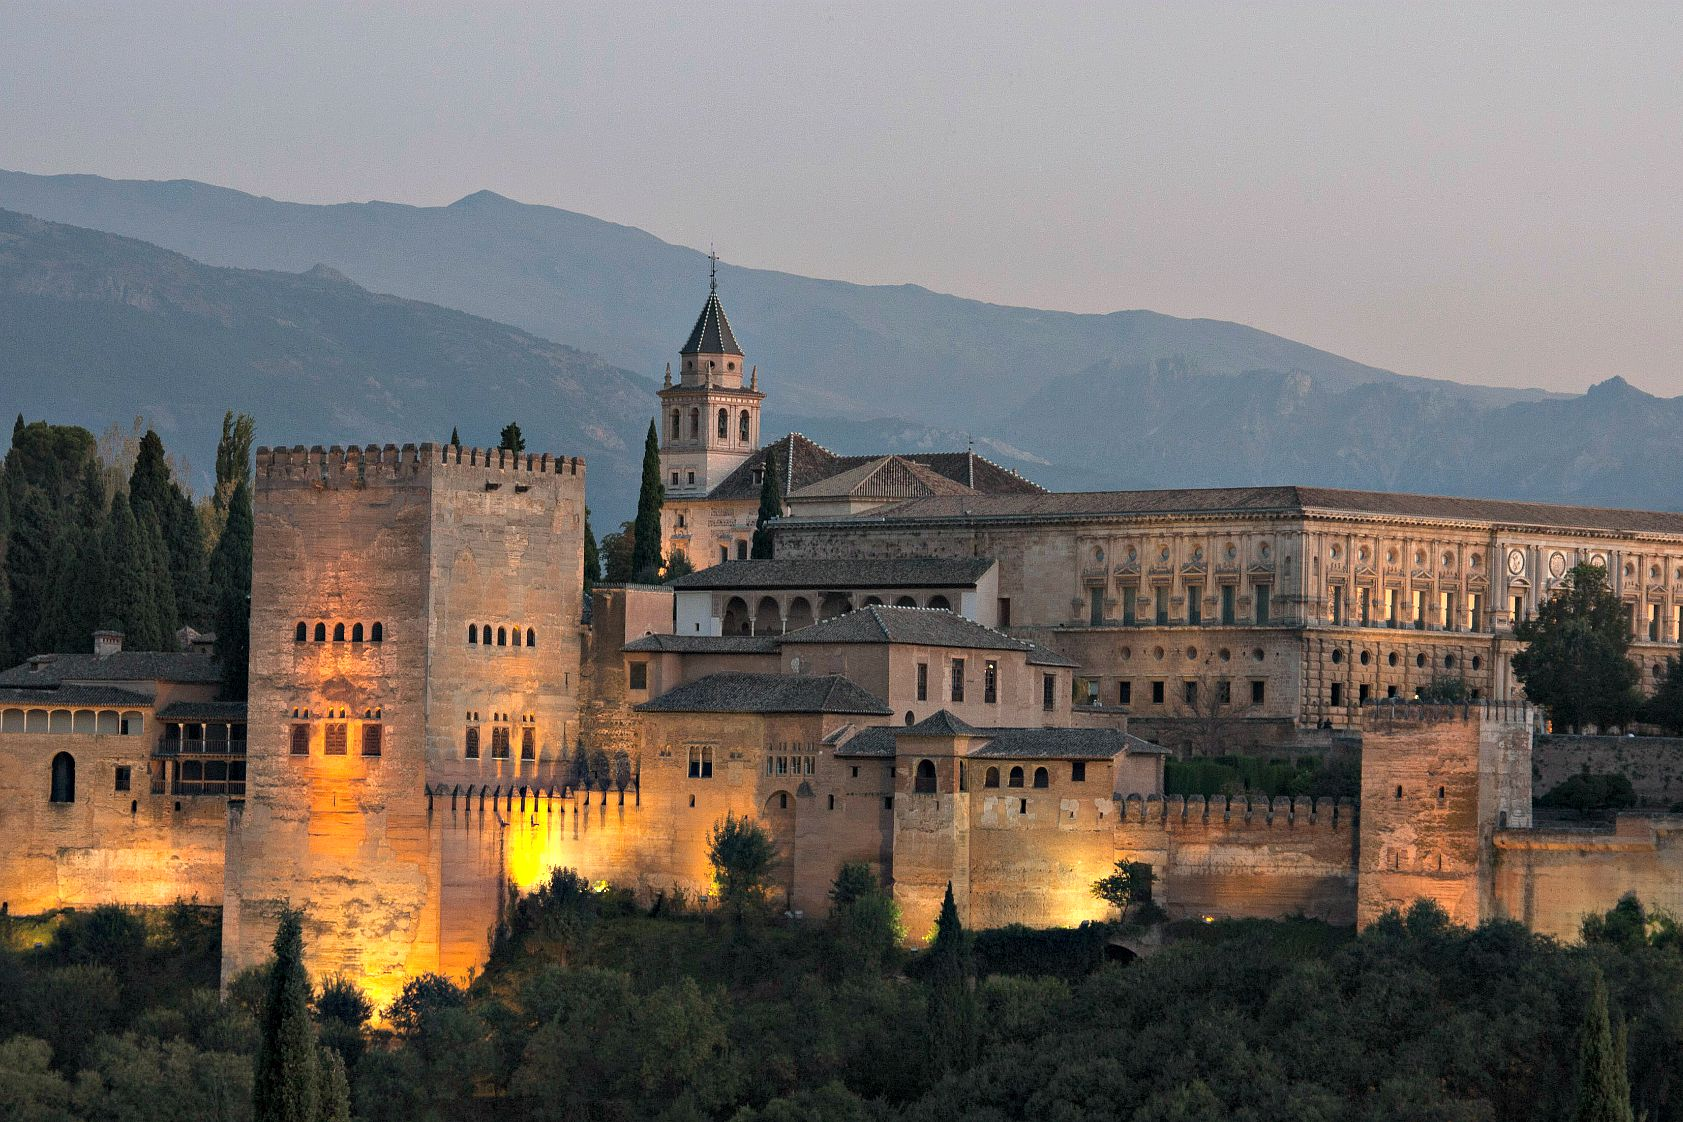 alhambra palace website.jpg